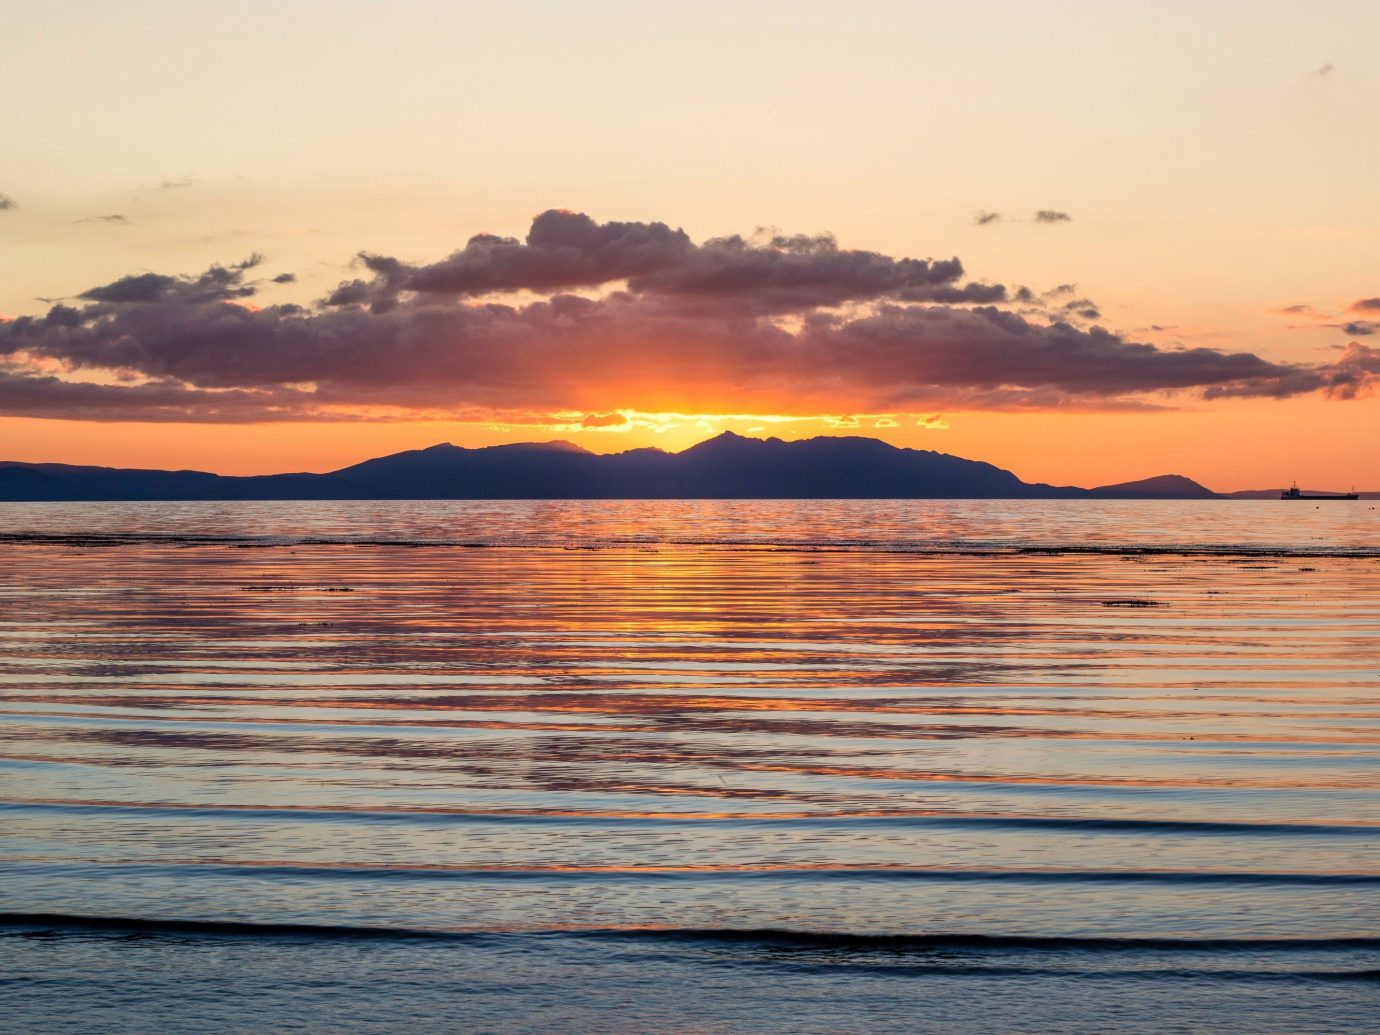 Trip Ideas sky outdoor water Sunset horizon Sea sunrise calm Ocean afterglow shore cloud morning Sun evening loch dawn sunlight wave reflection dusk wind wave red sky at morning clouds Lake